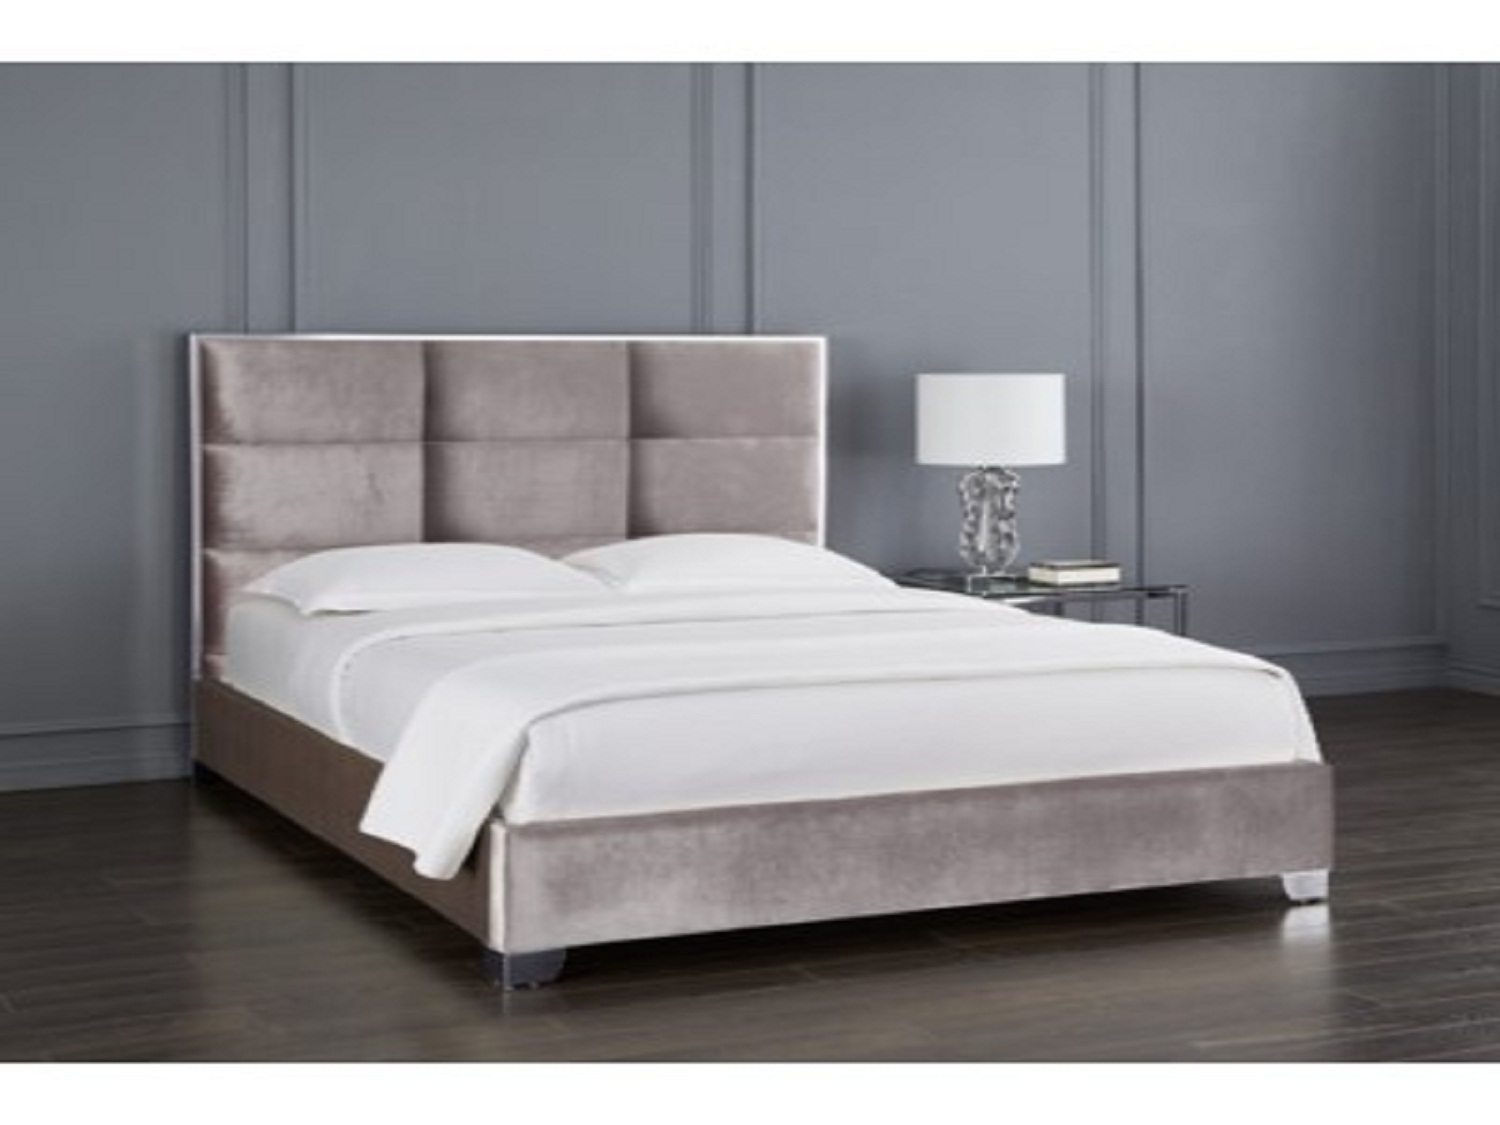 Blair Grey Velvet Bed, GY-0228, Beds by Midha Furniture to Brampton, Mississauga, Etobicoke, Toronto, Scraborough, Caledon, Oakville, Markham, Ajax, Pickering, Oshawa, Richmondhill, Kitchener, Hamilton and GTA area